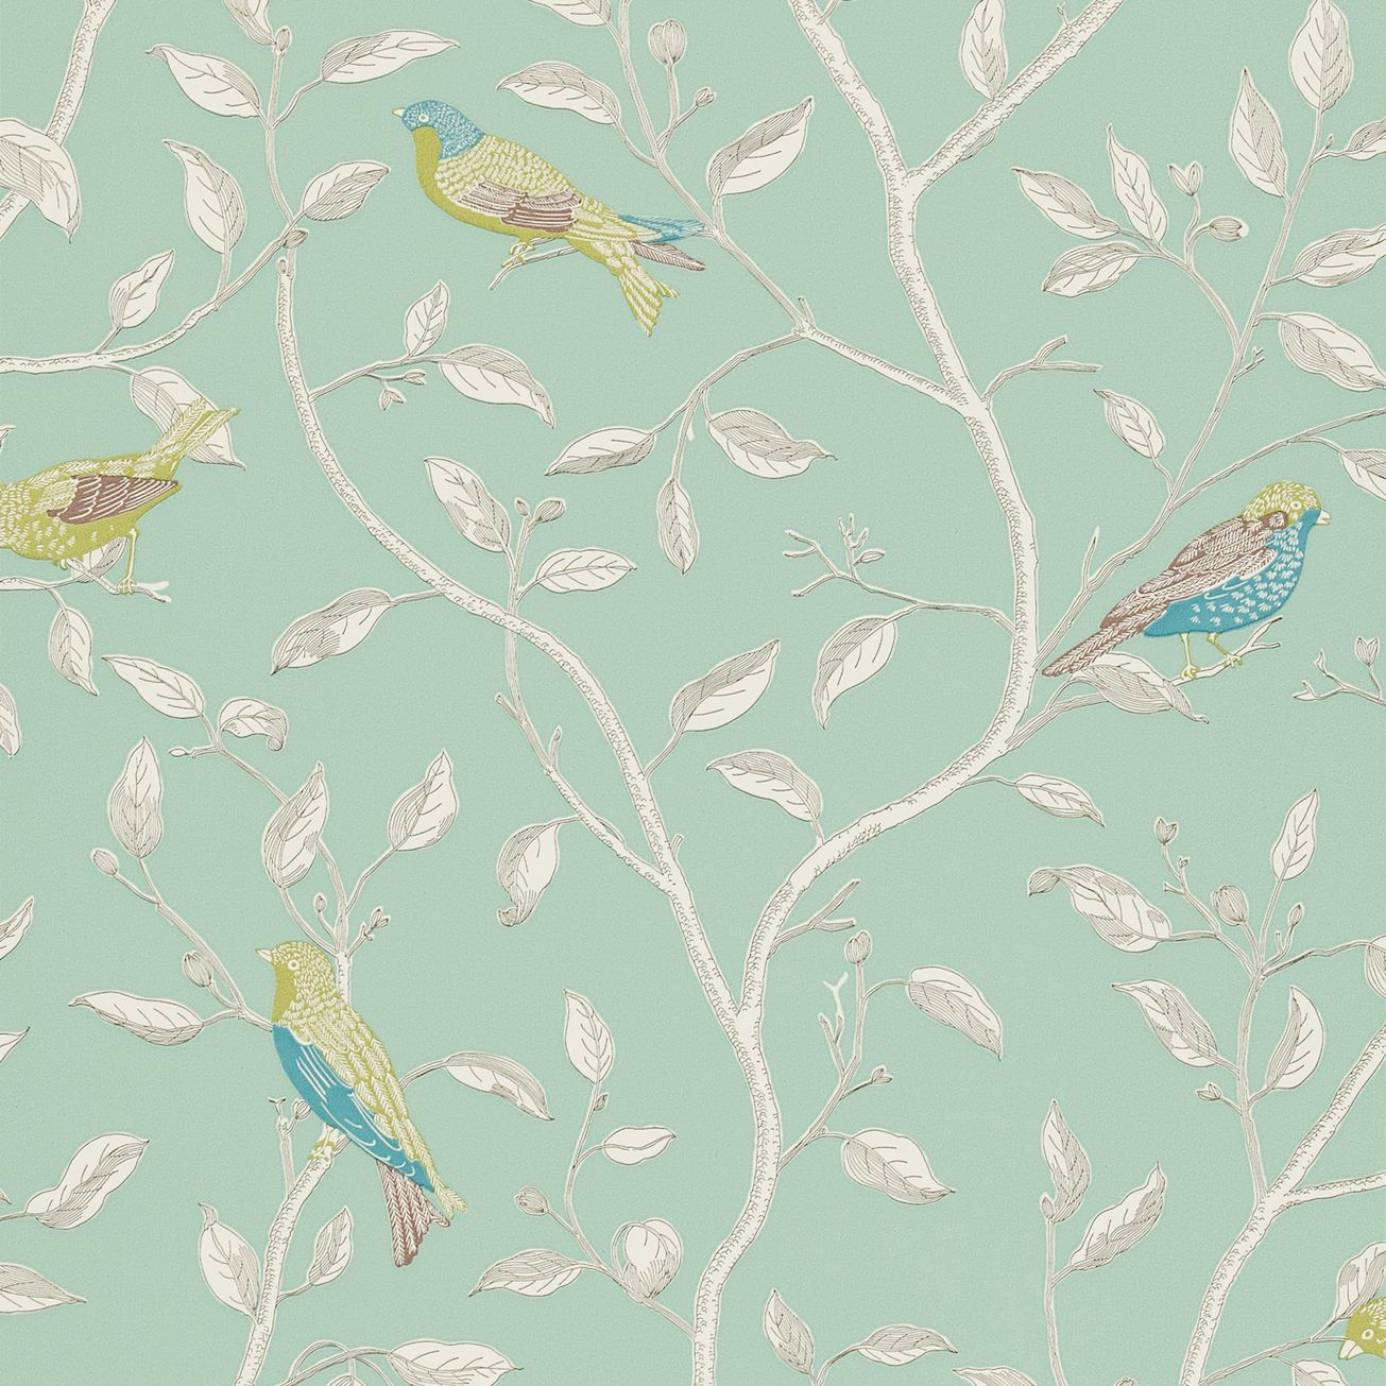 Finches Wallpaper - Duckegg (DOPWFI103) - Sanderson